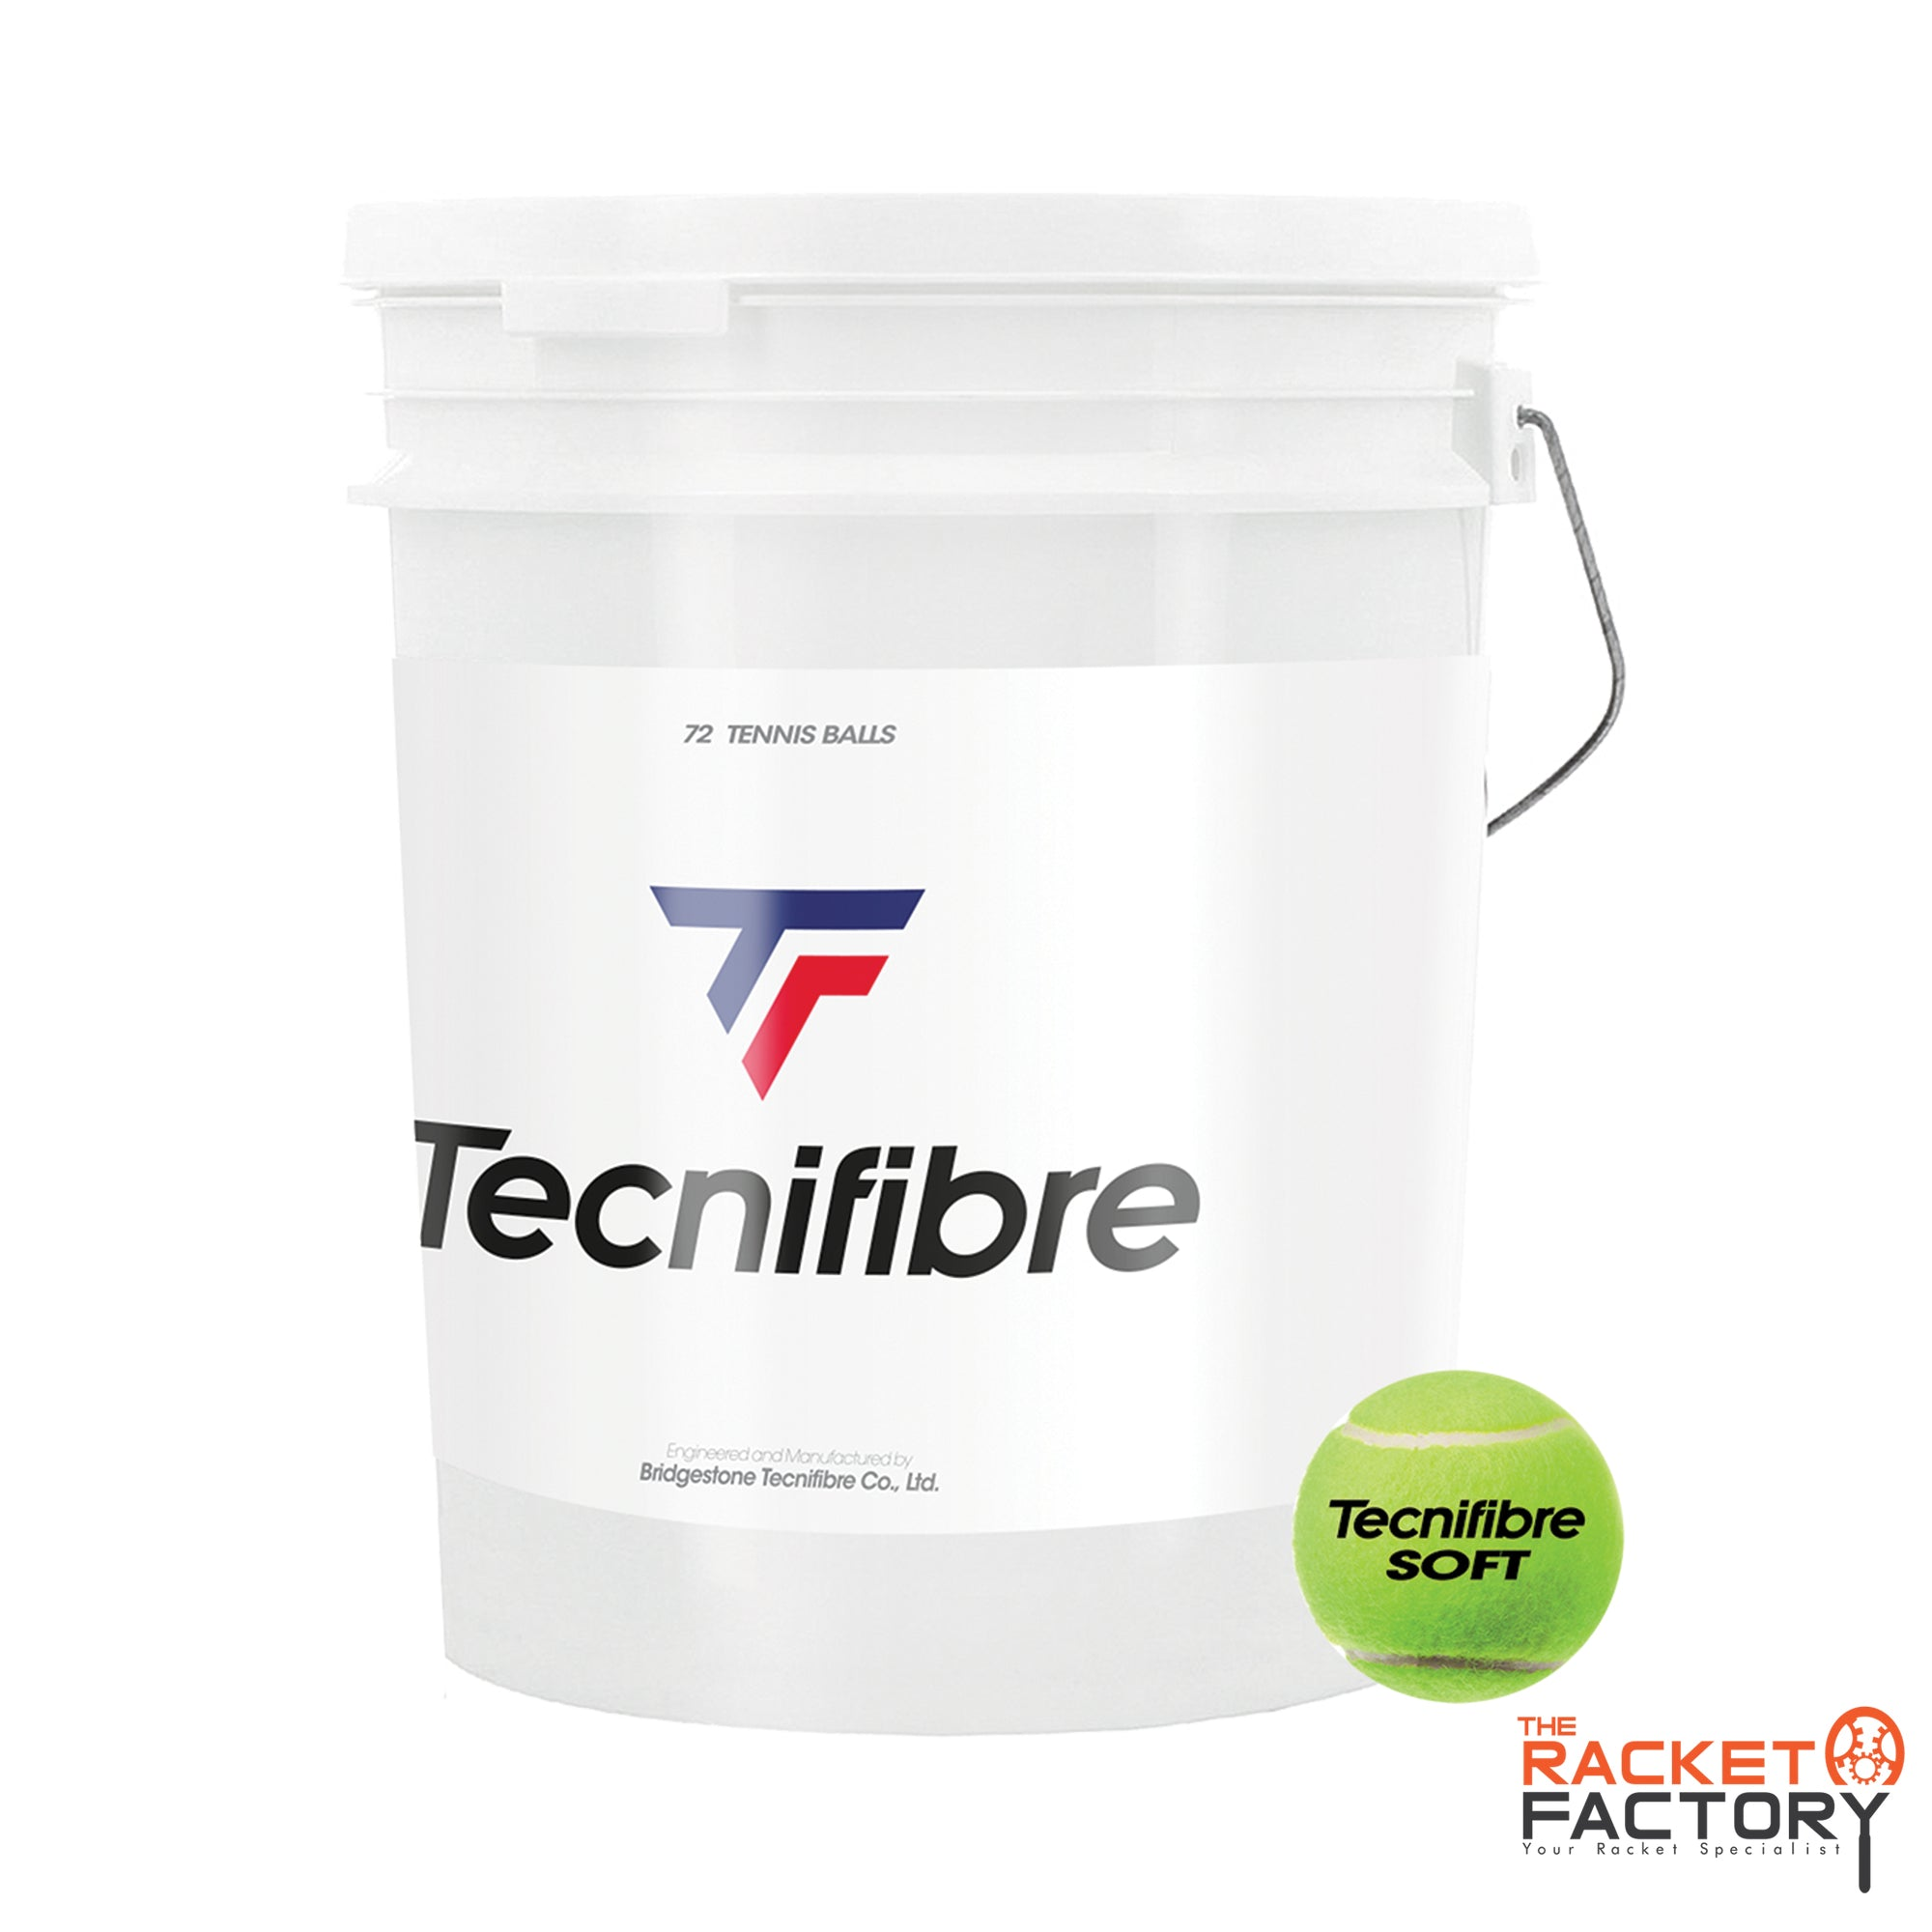 Tecnifibre Soft Ball Bucket of 72 (Stage 1)